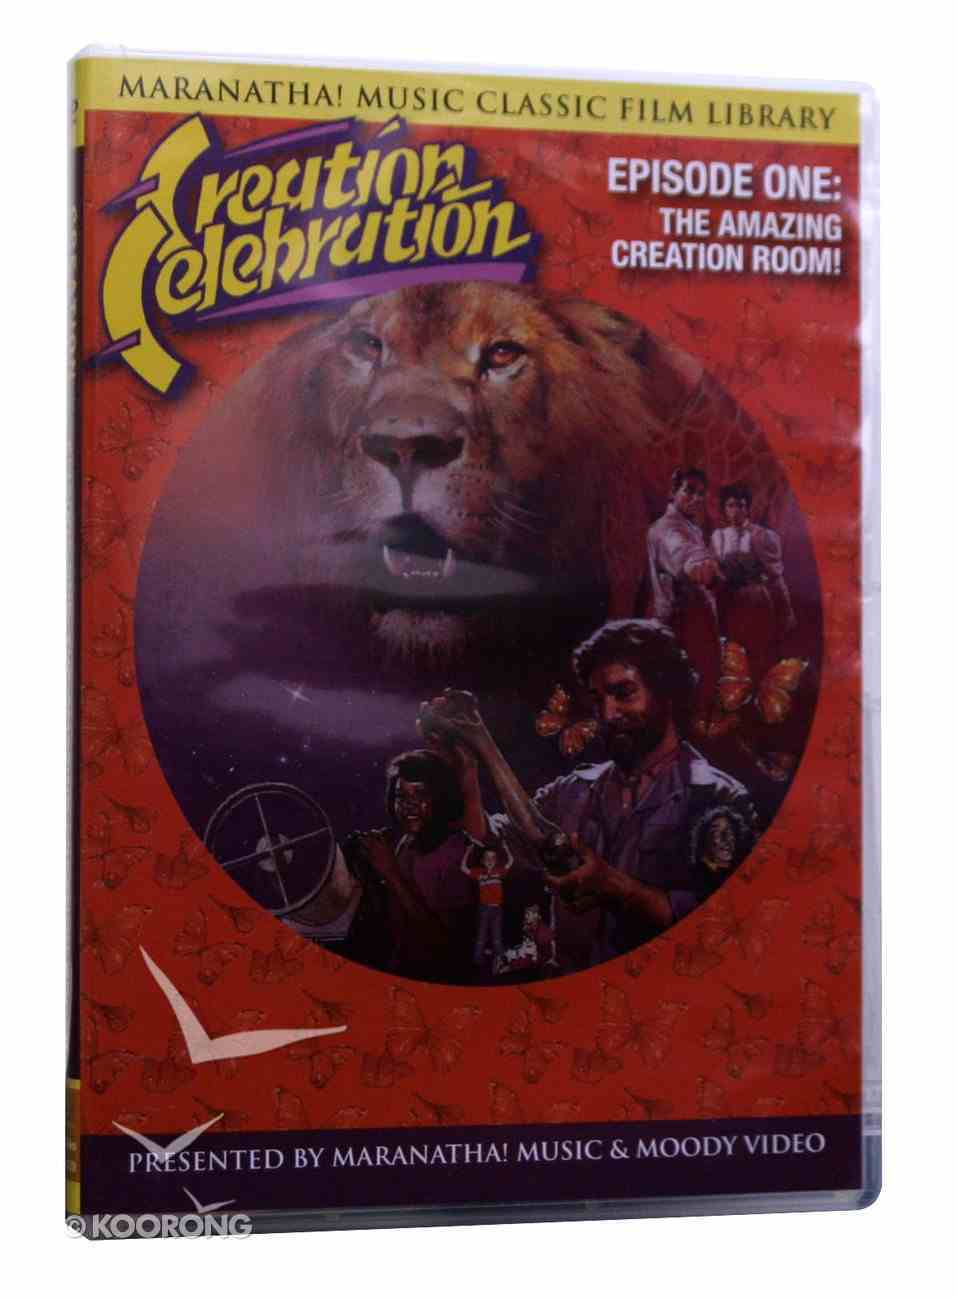 The Amazing Creation Room DVD